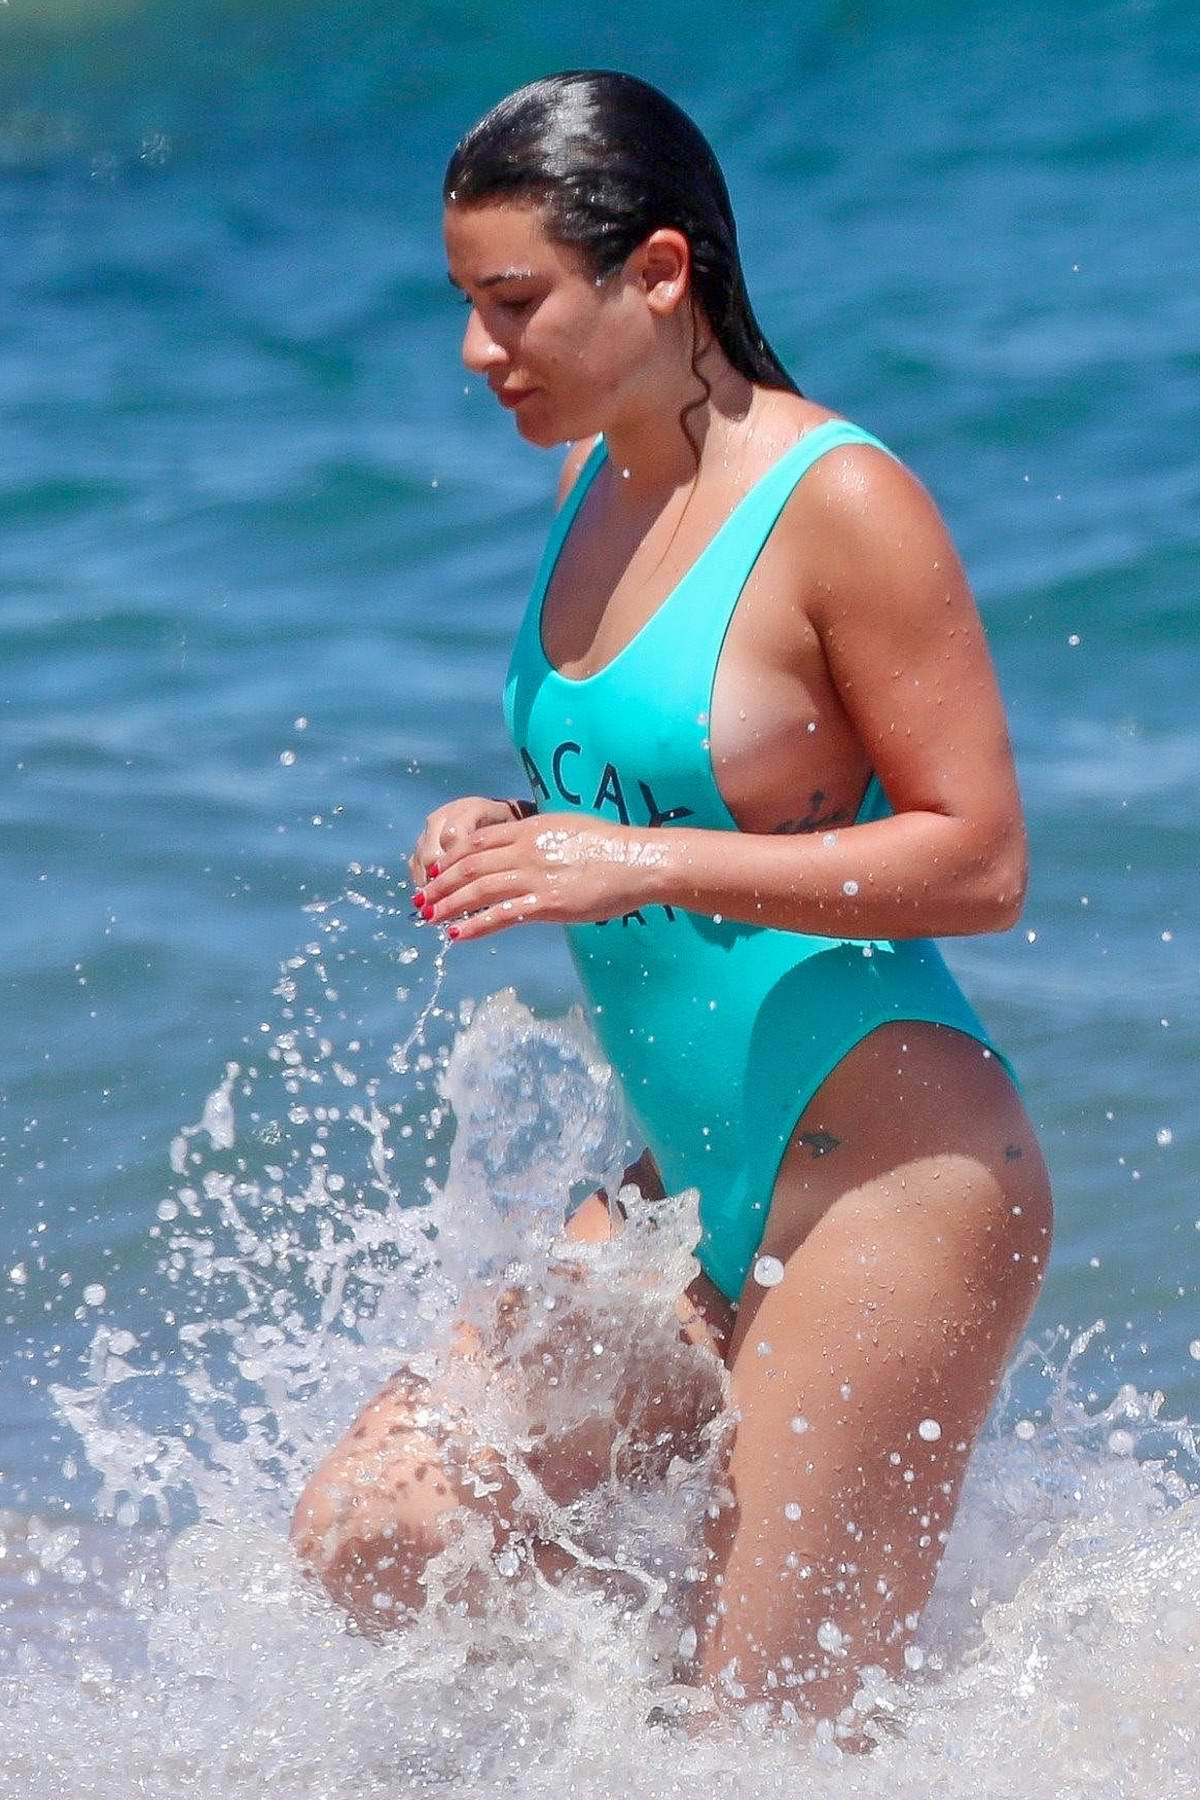 lea-michele-in-a-blue-swimsuit-shows-off-her-yoga-skills-on-a-paddle-board-in-maui-hawaii-300617_2.jpg